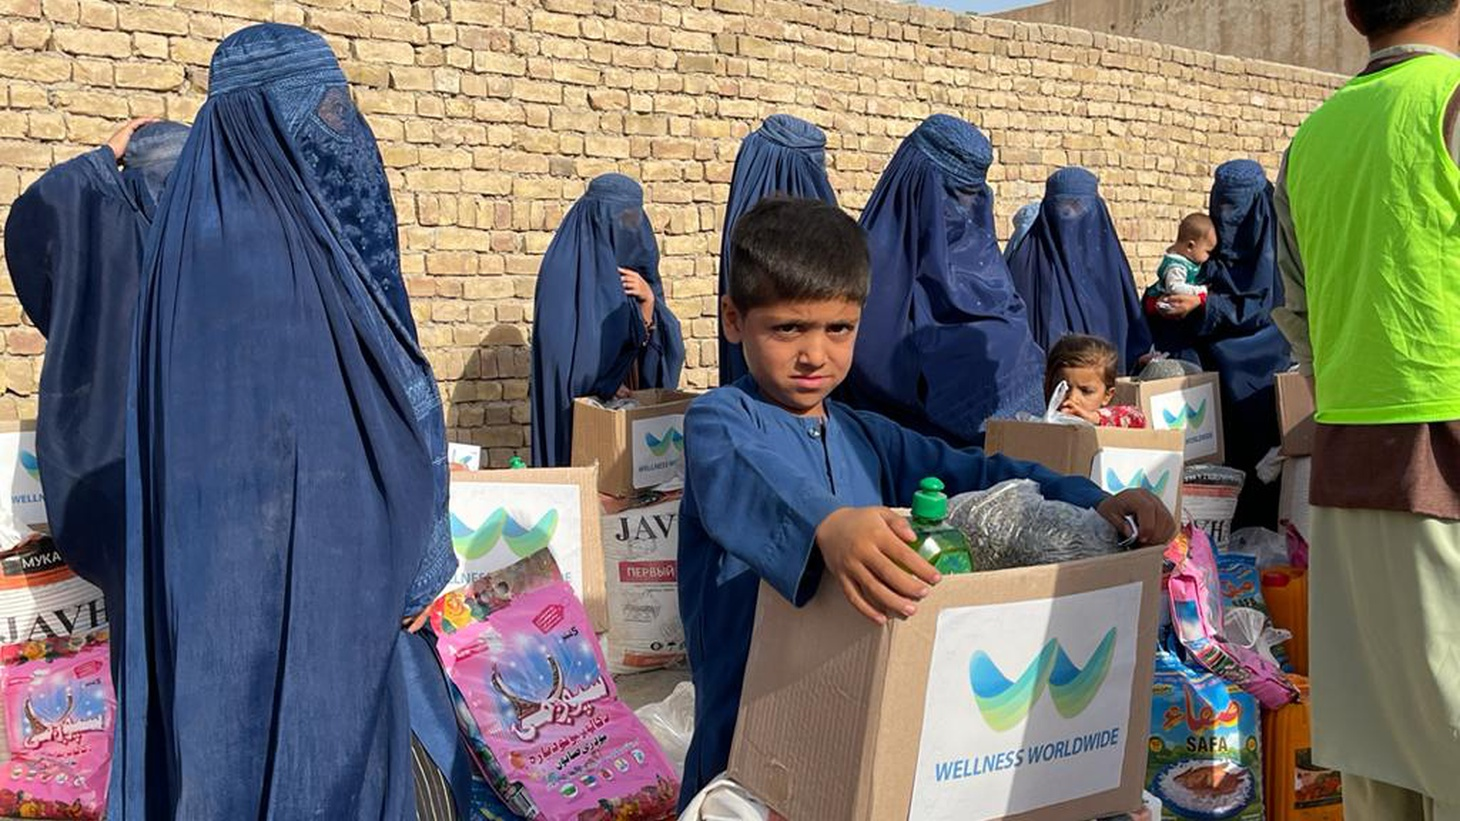 Women and children in the Afghan city of Kunduz line up at a food distribution site formed by the group Wellness Worldwide.